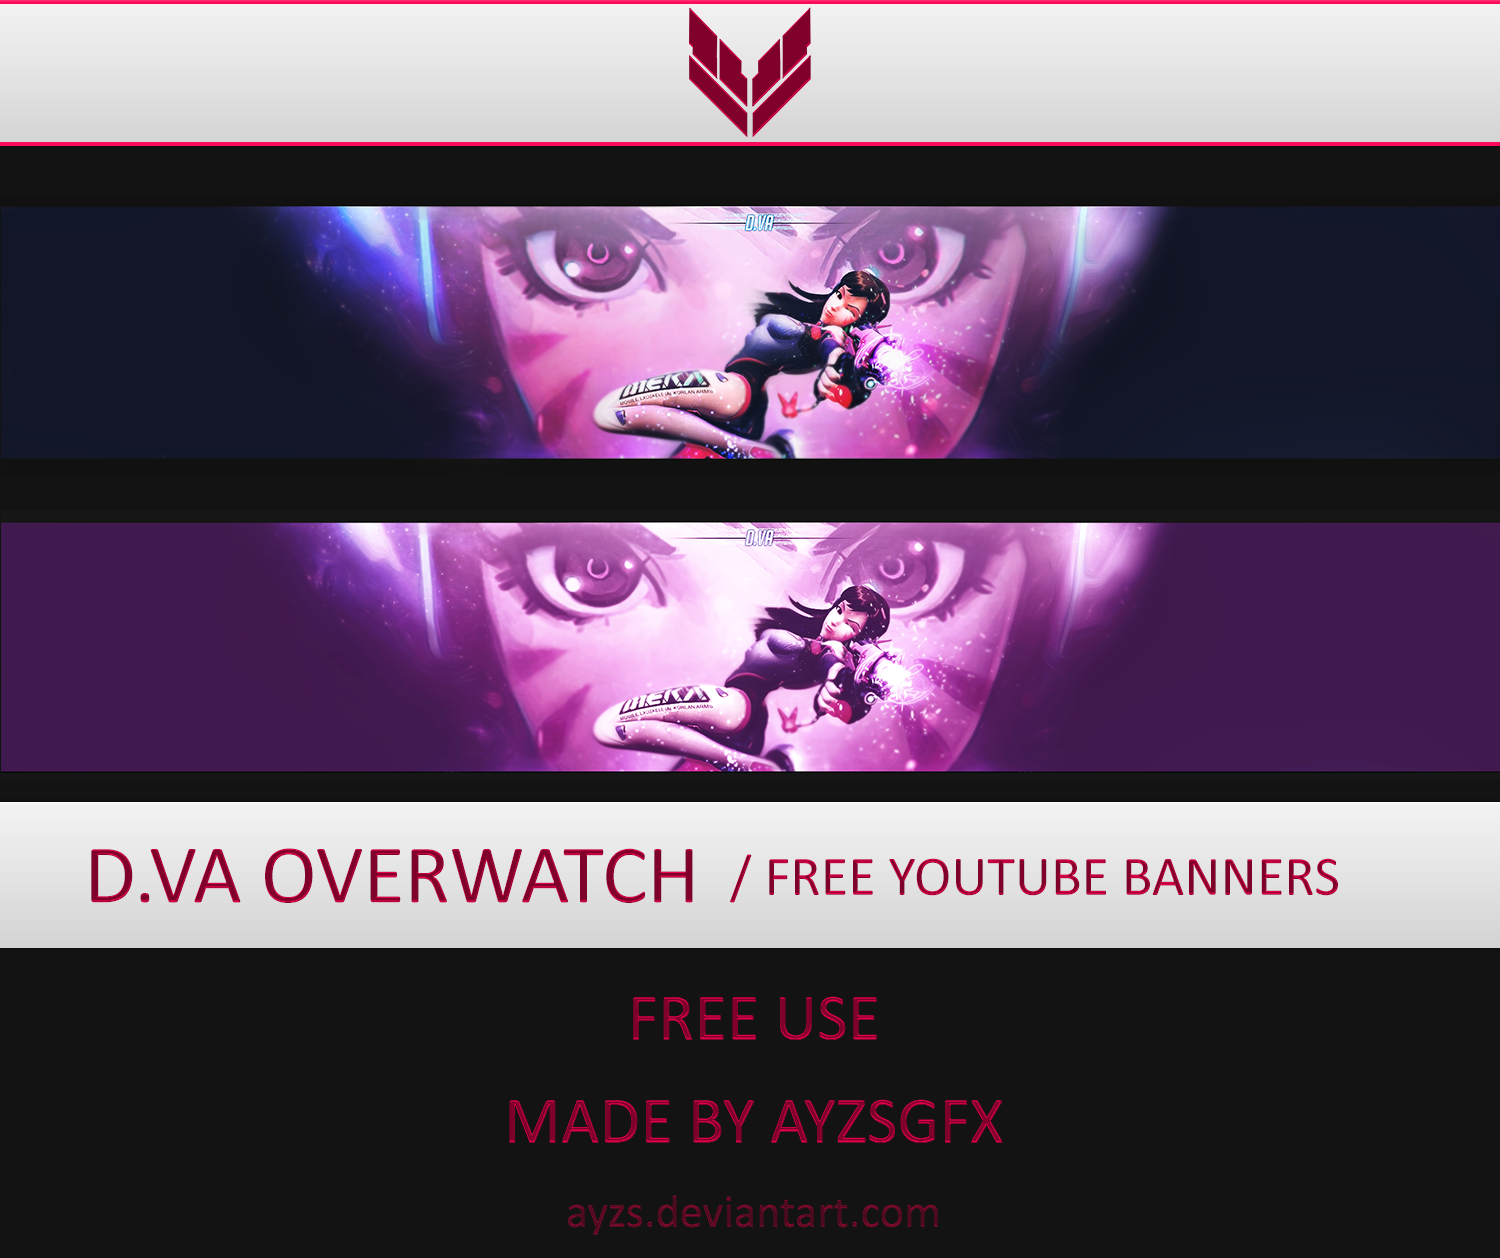 D Va Overwatch Free Banner Template By Ayzs On Deviantart